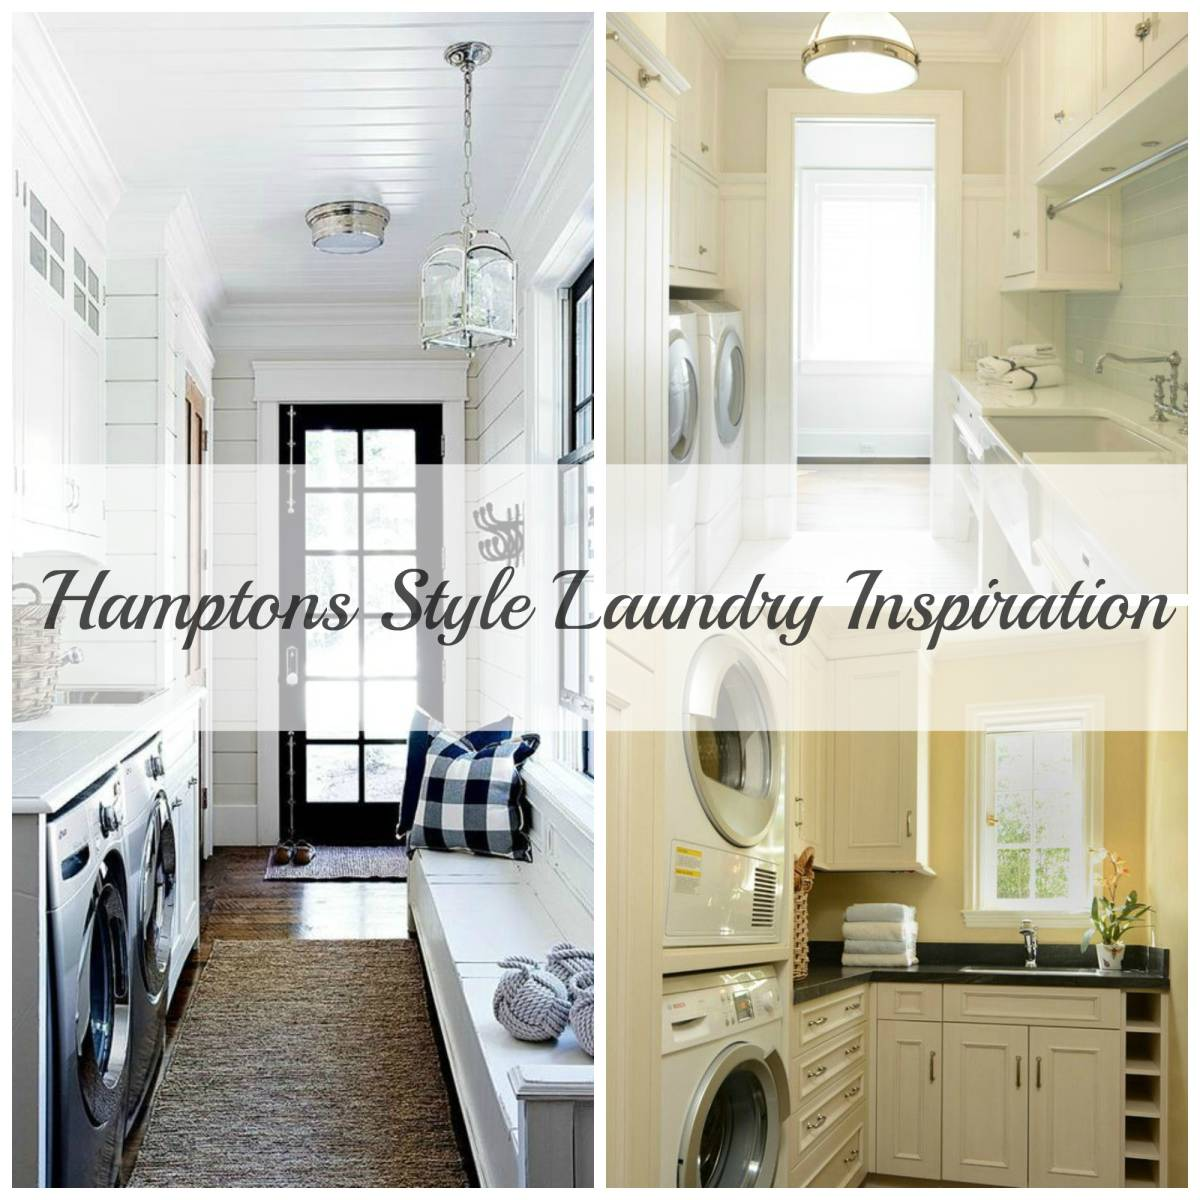 Hamptons Style Laundry-Inspired Space